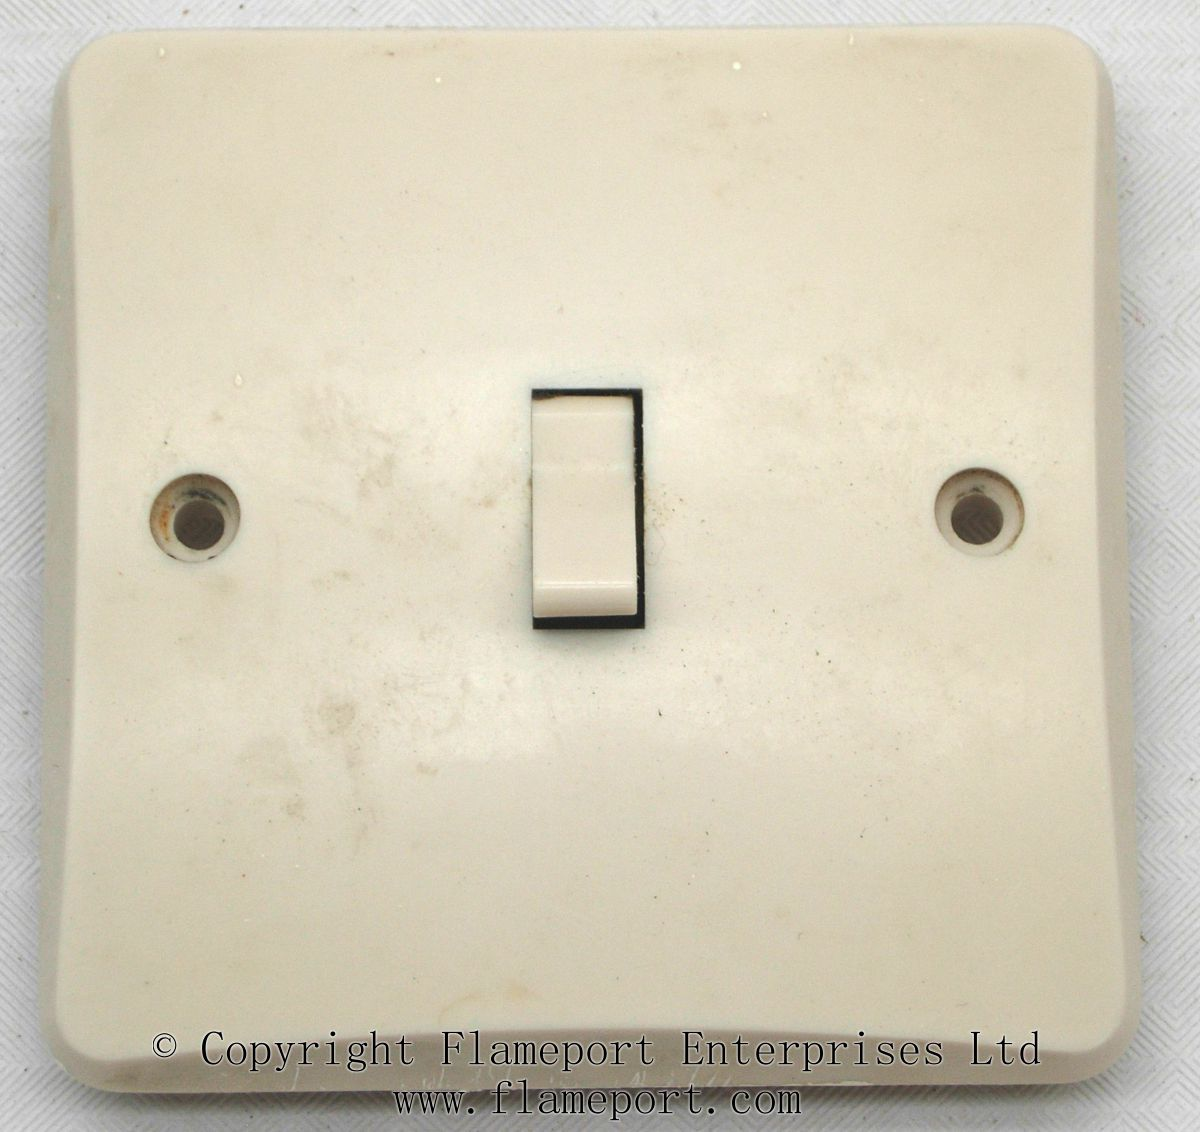 mk double light switch wiring diagram state for sequence detector 4 gang dimmer elsavadorla